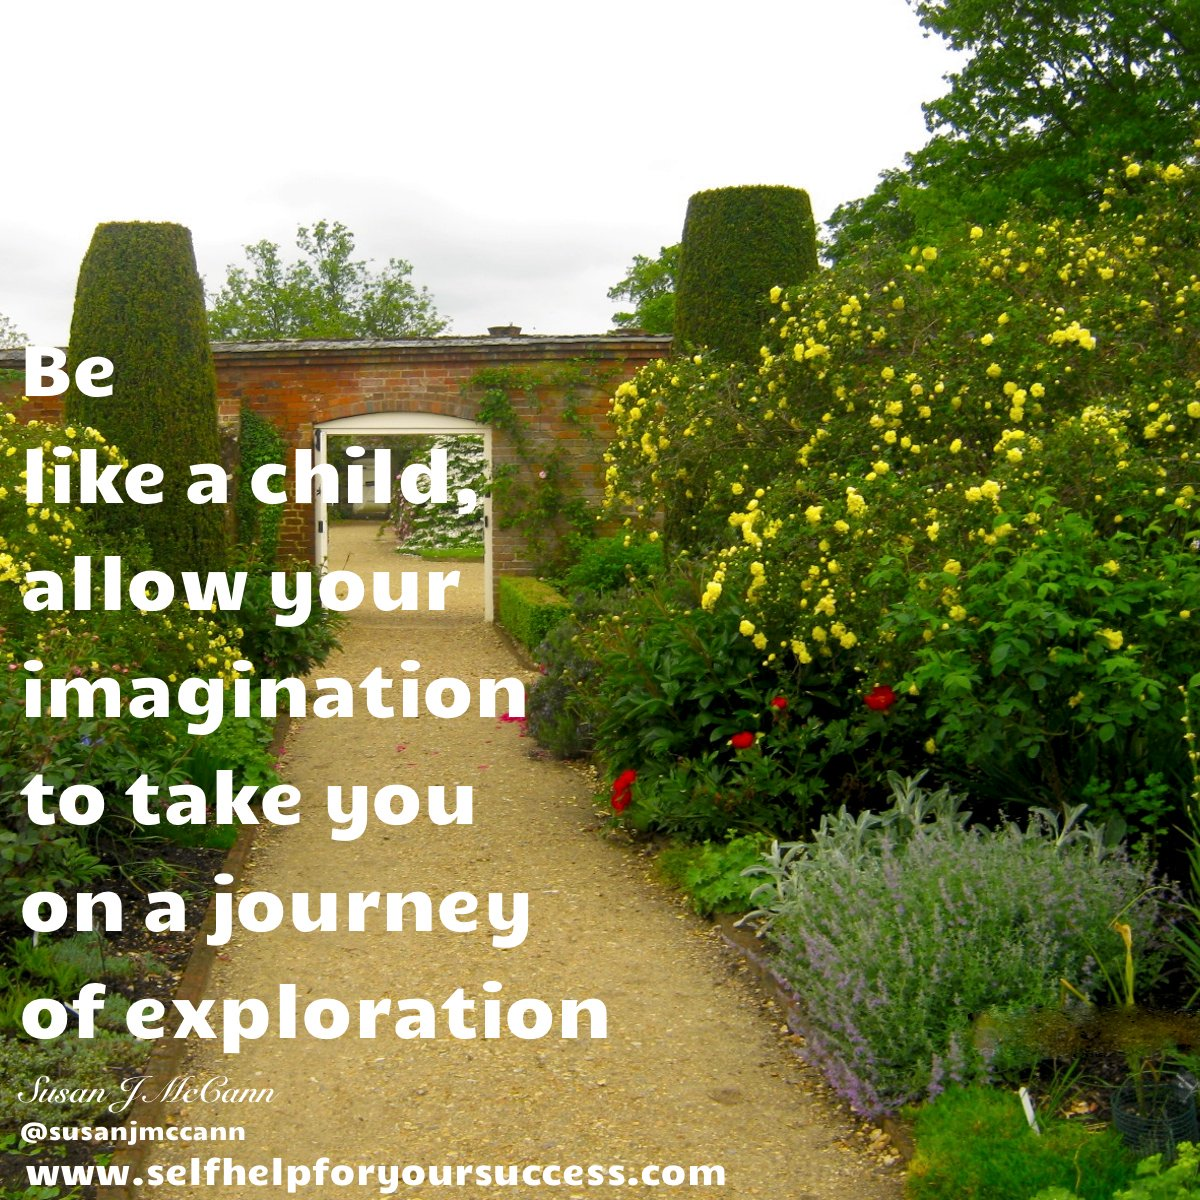 Be inquisitive like a child #leadership #personalgrowth <br>http://pic.twitter.com/BIpARuc7Kz